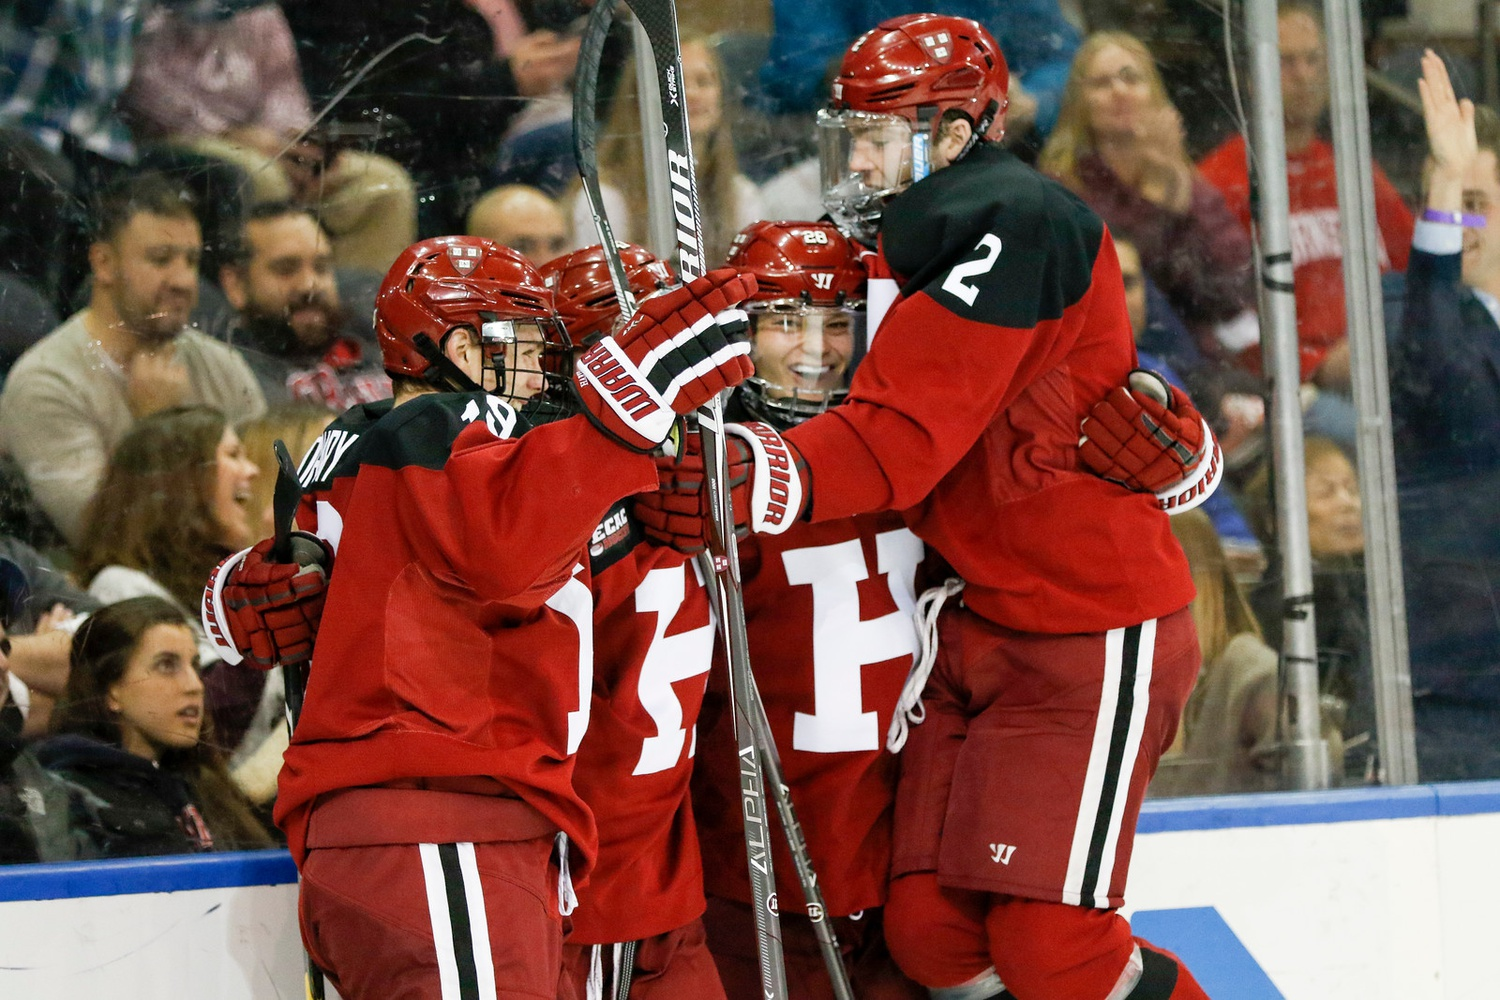 Last season, Harvard defeated Cornell at Madison Square Garden in a pivotal game in the 2018-2019 season narrative.